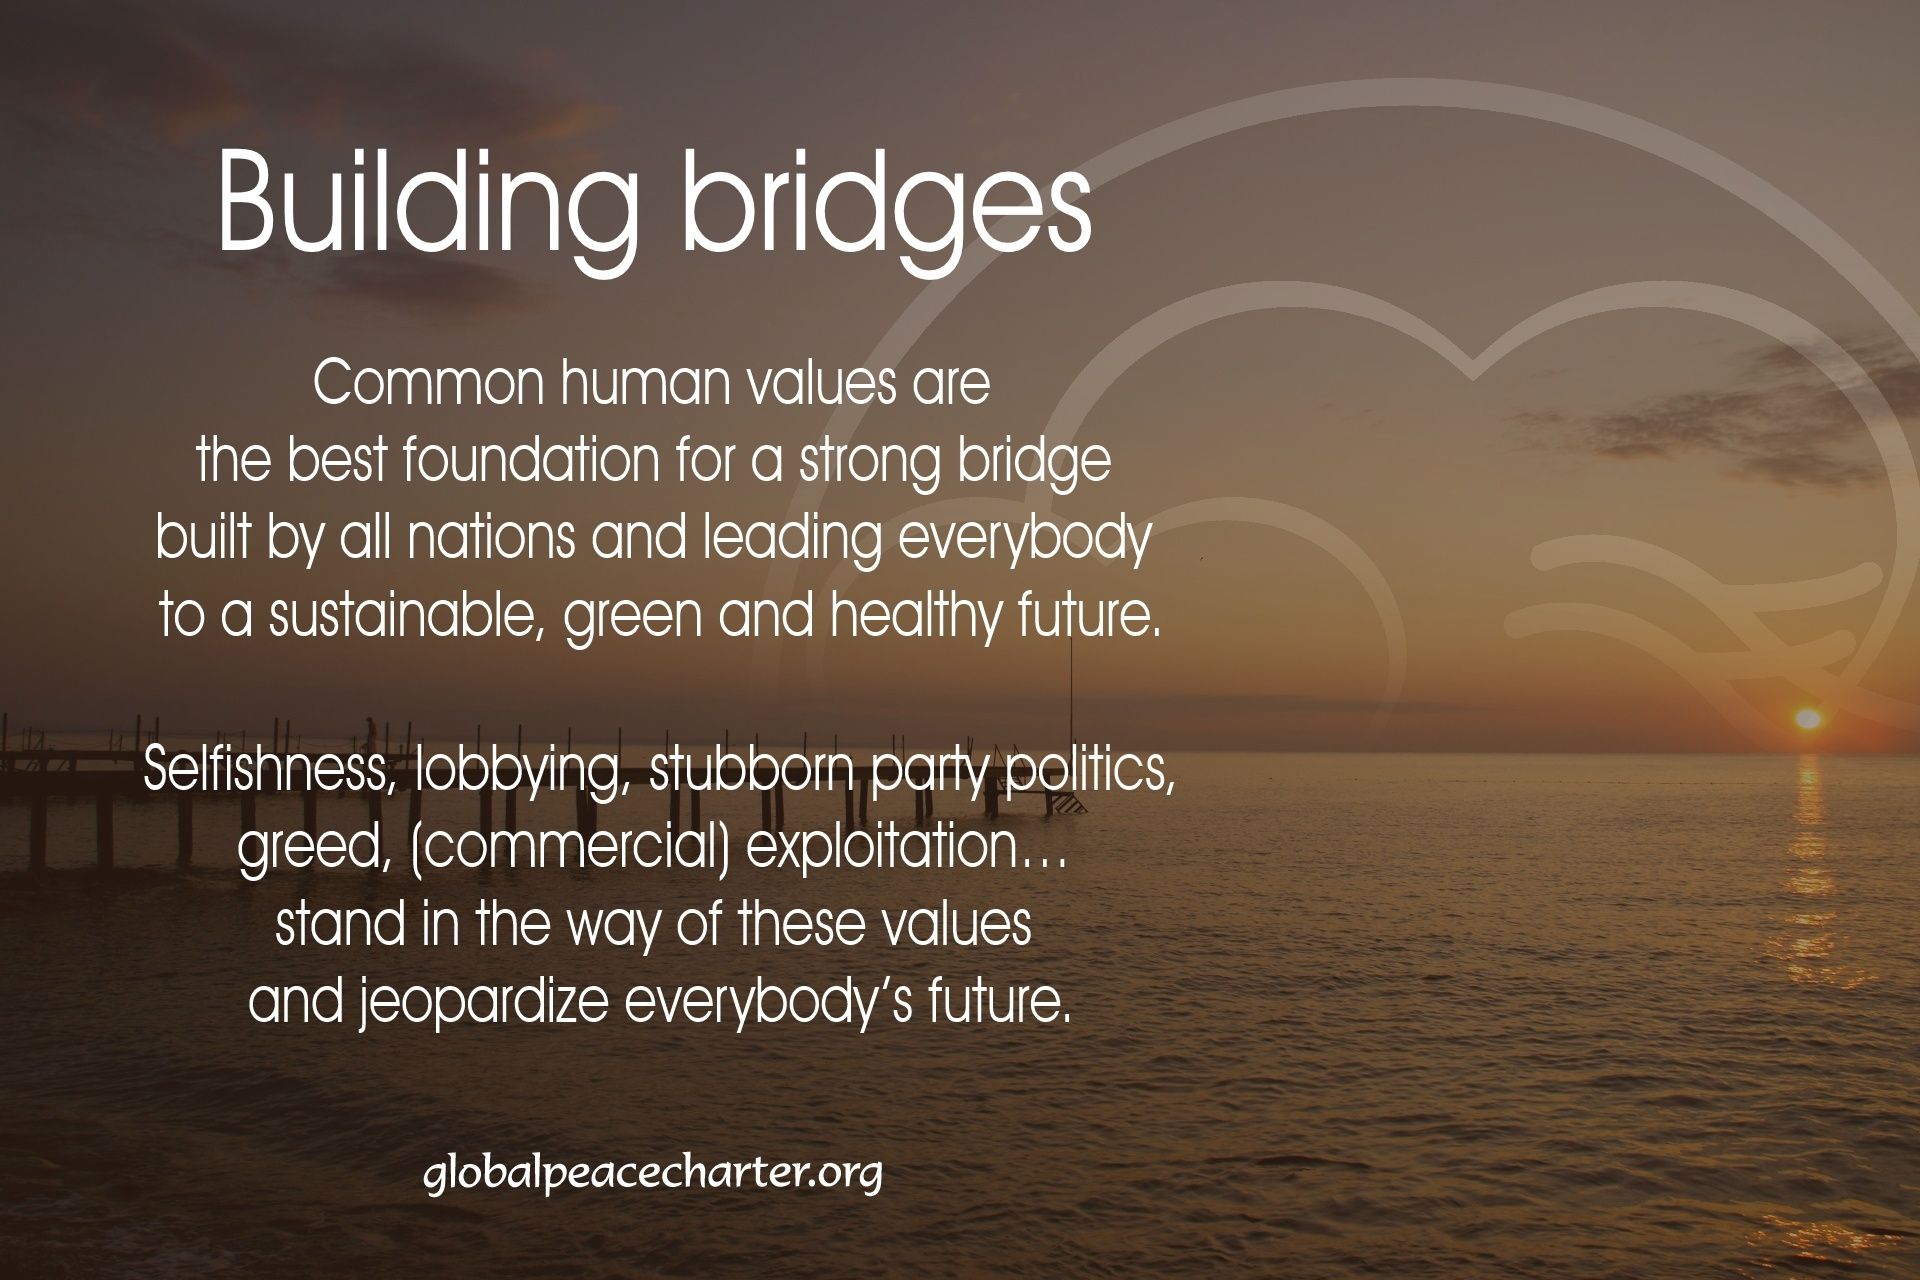 Building bridges